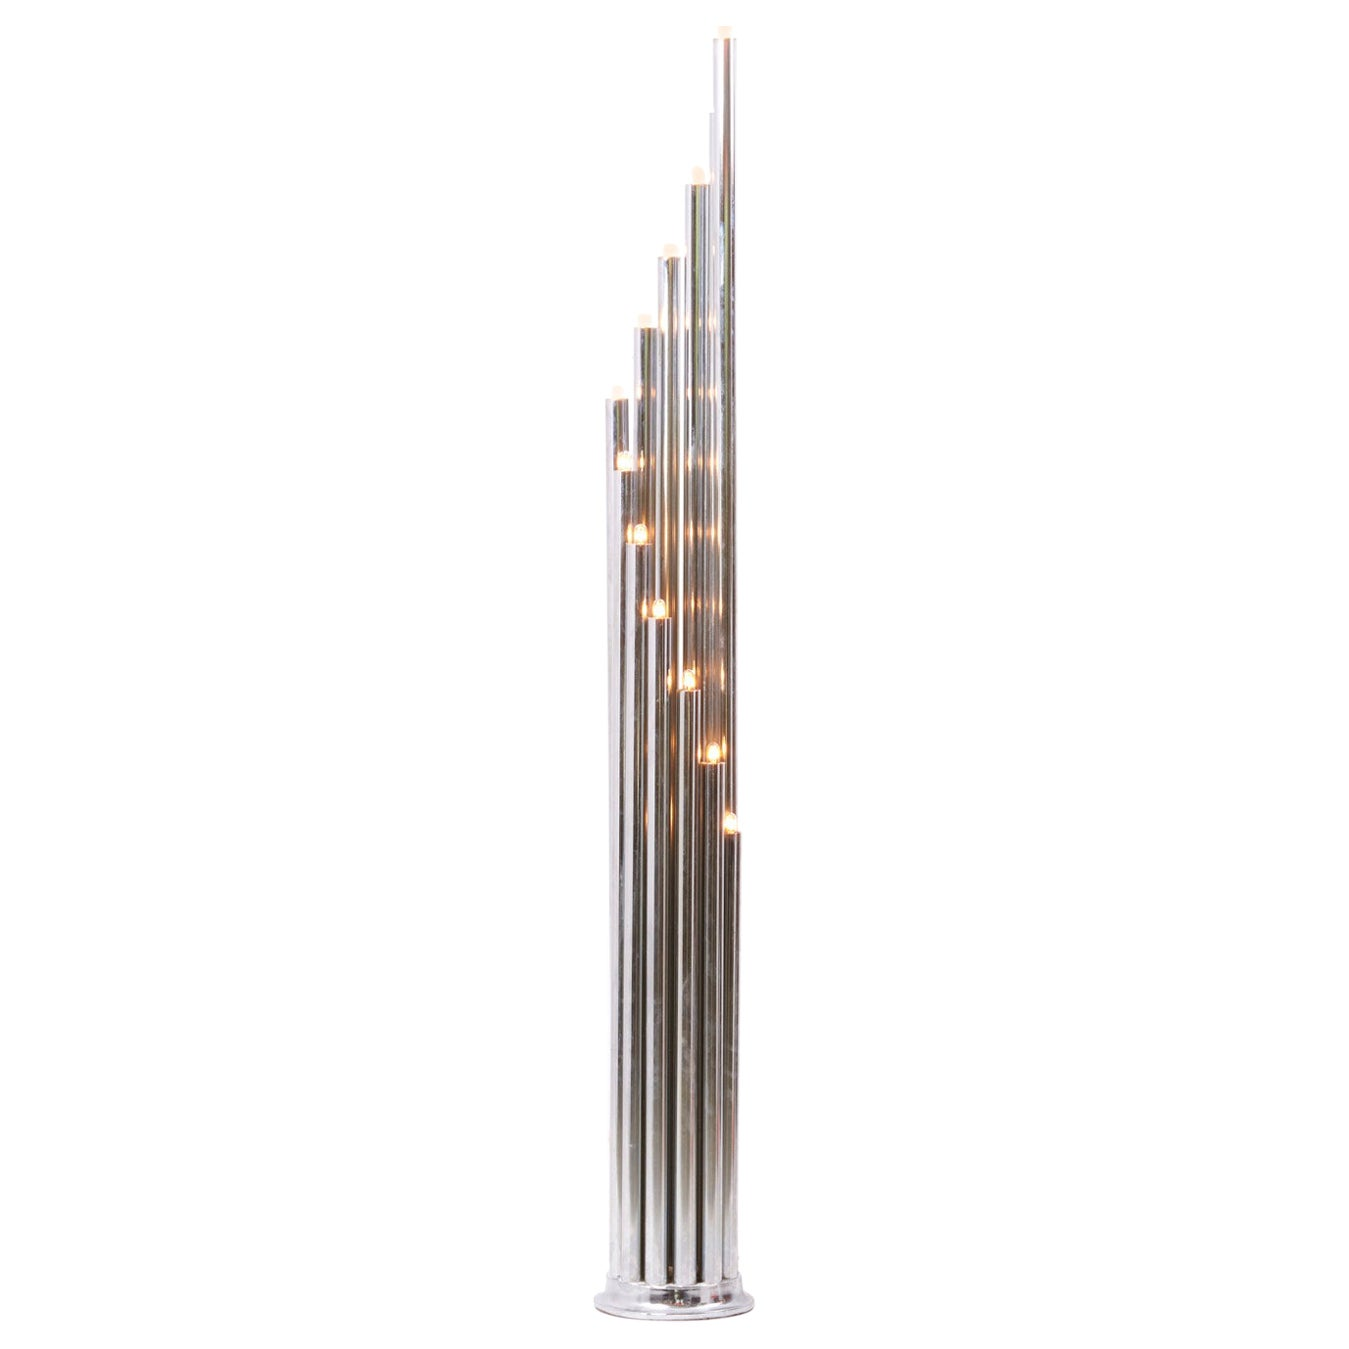 Space Age Chrome Floor Lamp by Reggiani, Italy 1970s